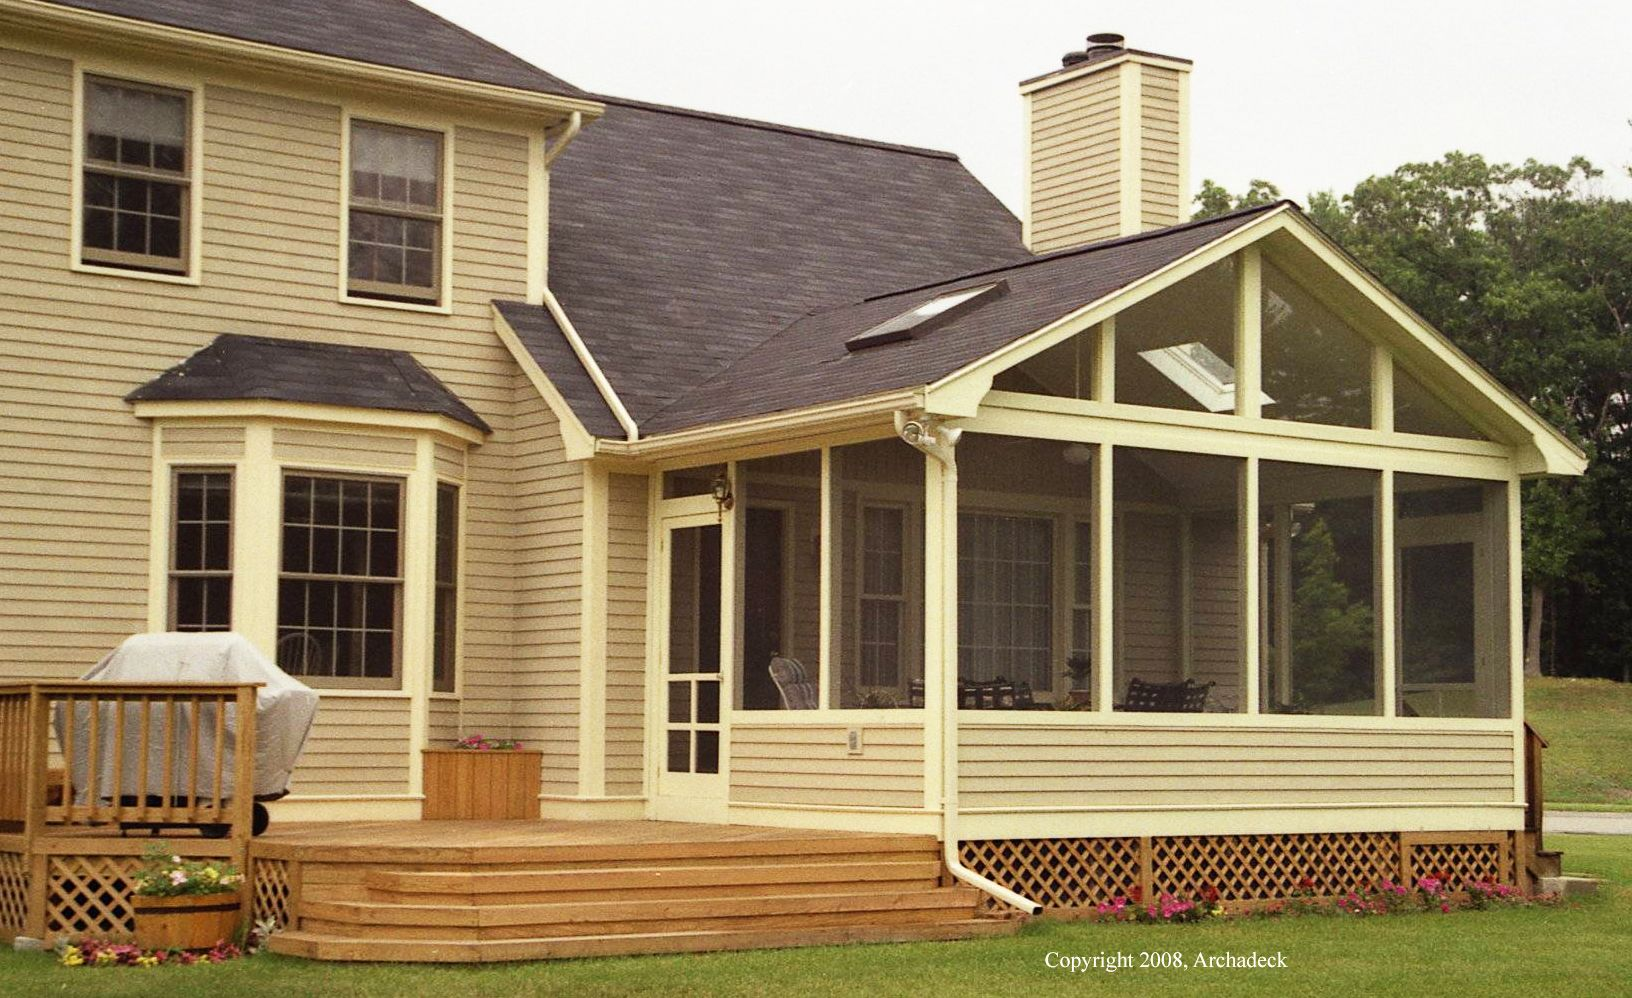 Suburban Boston Decks And Porches Blog Screened In Porch Plans Porch Plans Gable Roof Porch